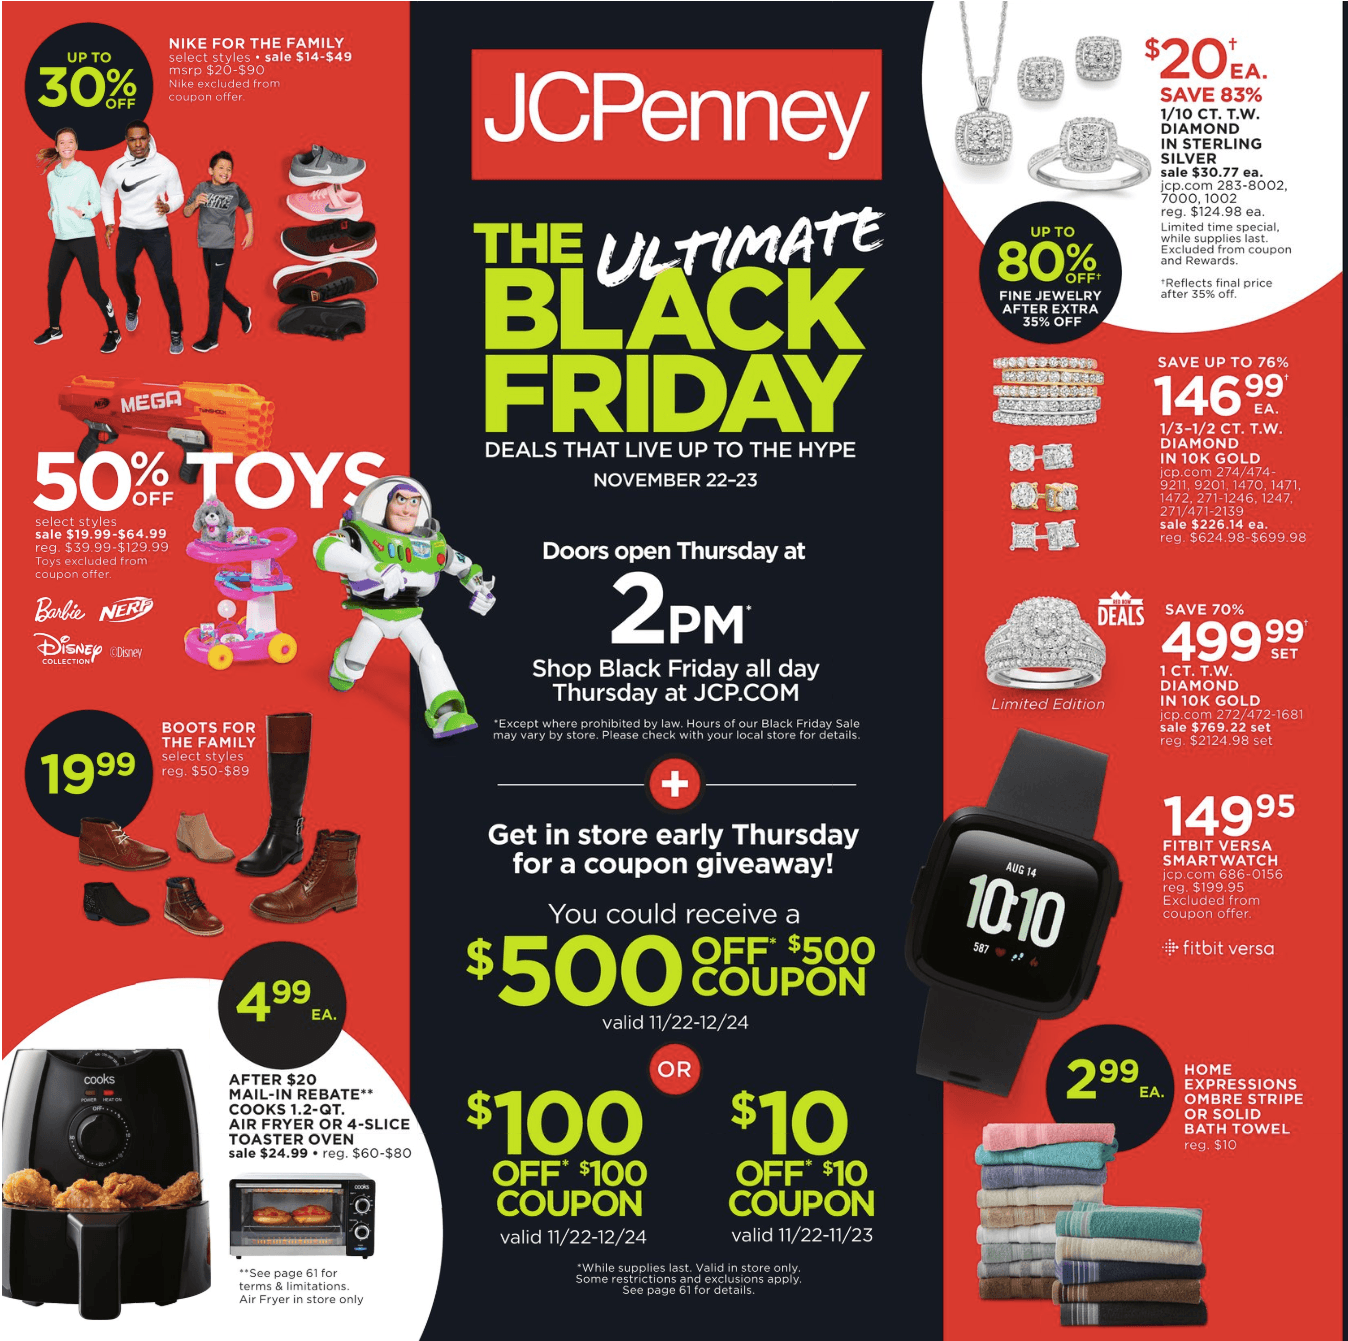 JCPenney Black Friday 2018 Page 1 33ca732a77fd4